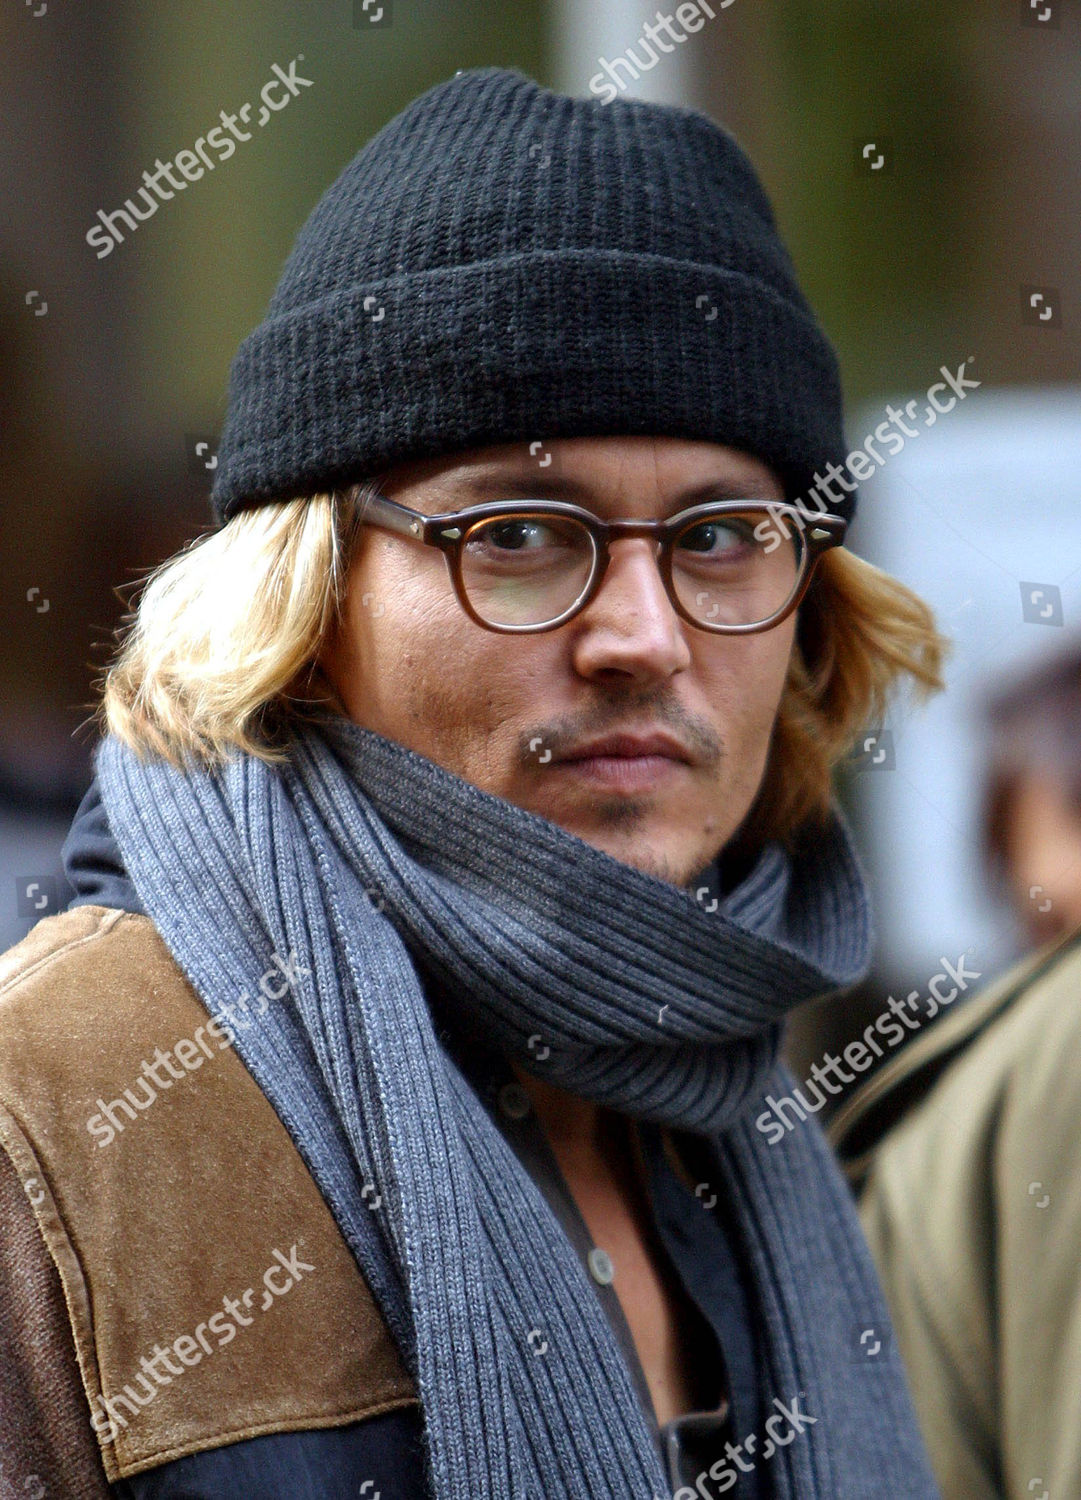 Johnny Depp Filming Thriller Based On Novel Editorial Stock Photo